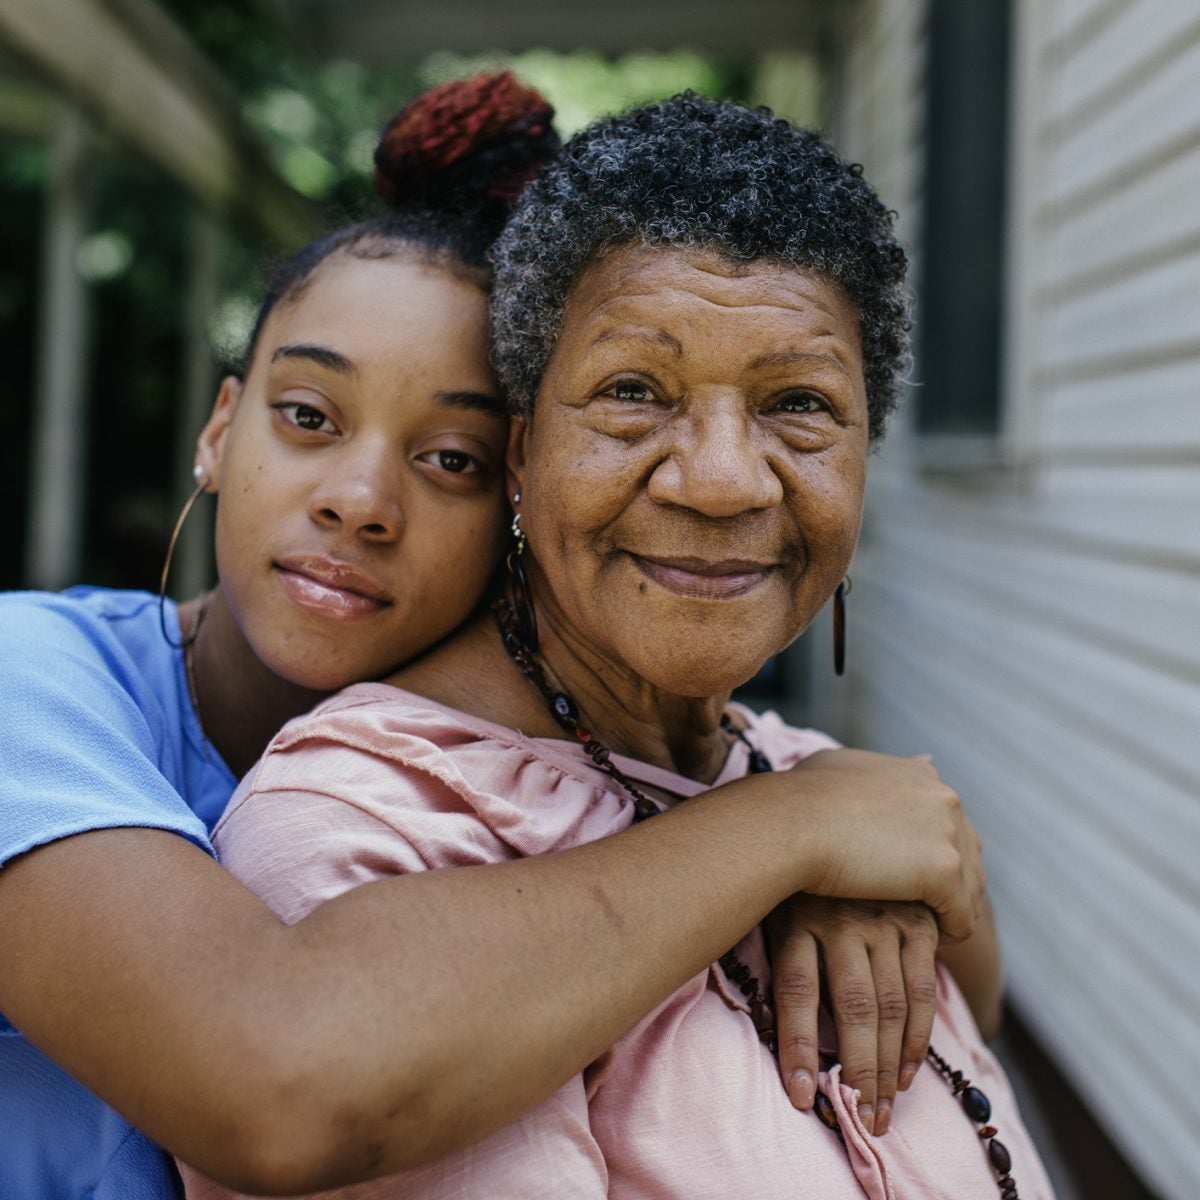 Health Equity Cypher Discusses COVID-19, Black Communities